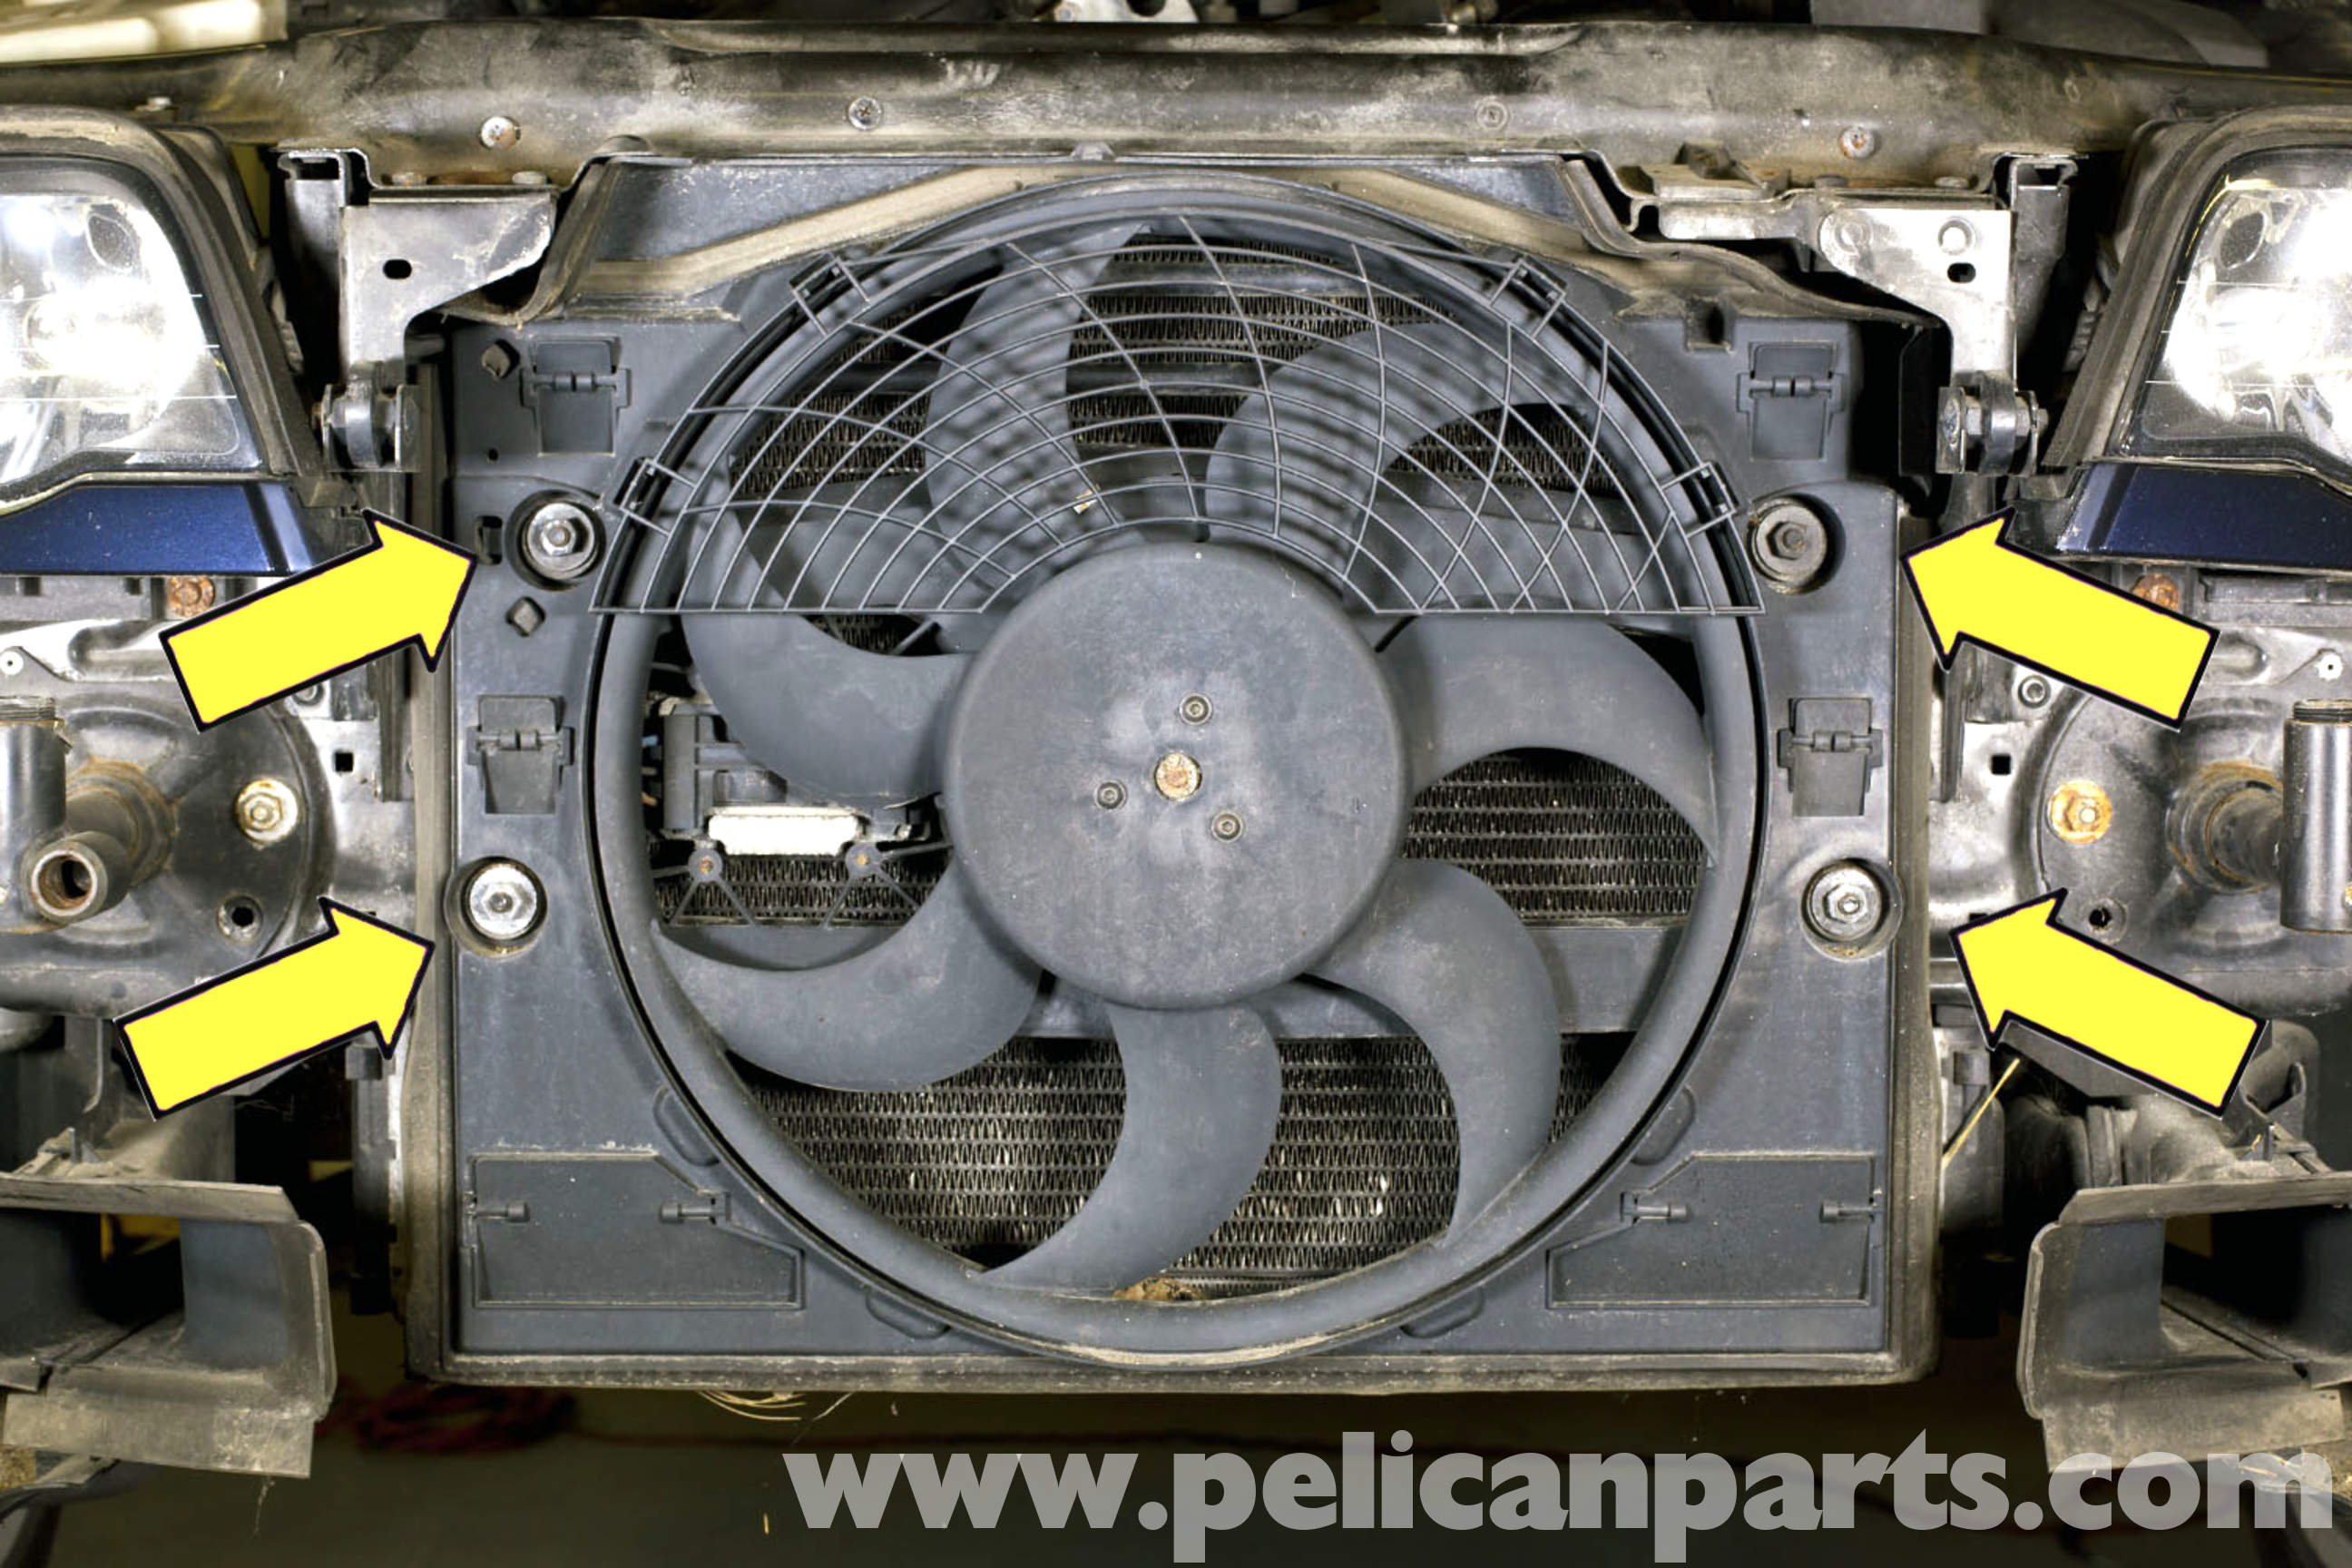 pic14 bmw e46 cooling fan replacement bmw 325i (2001 2005), bmw 325xi e46 fan wiring diagram at readyjetset.co